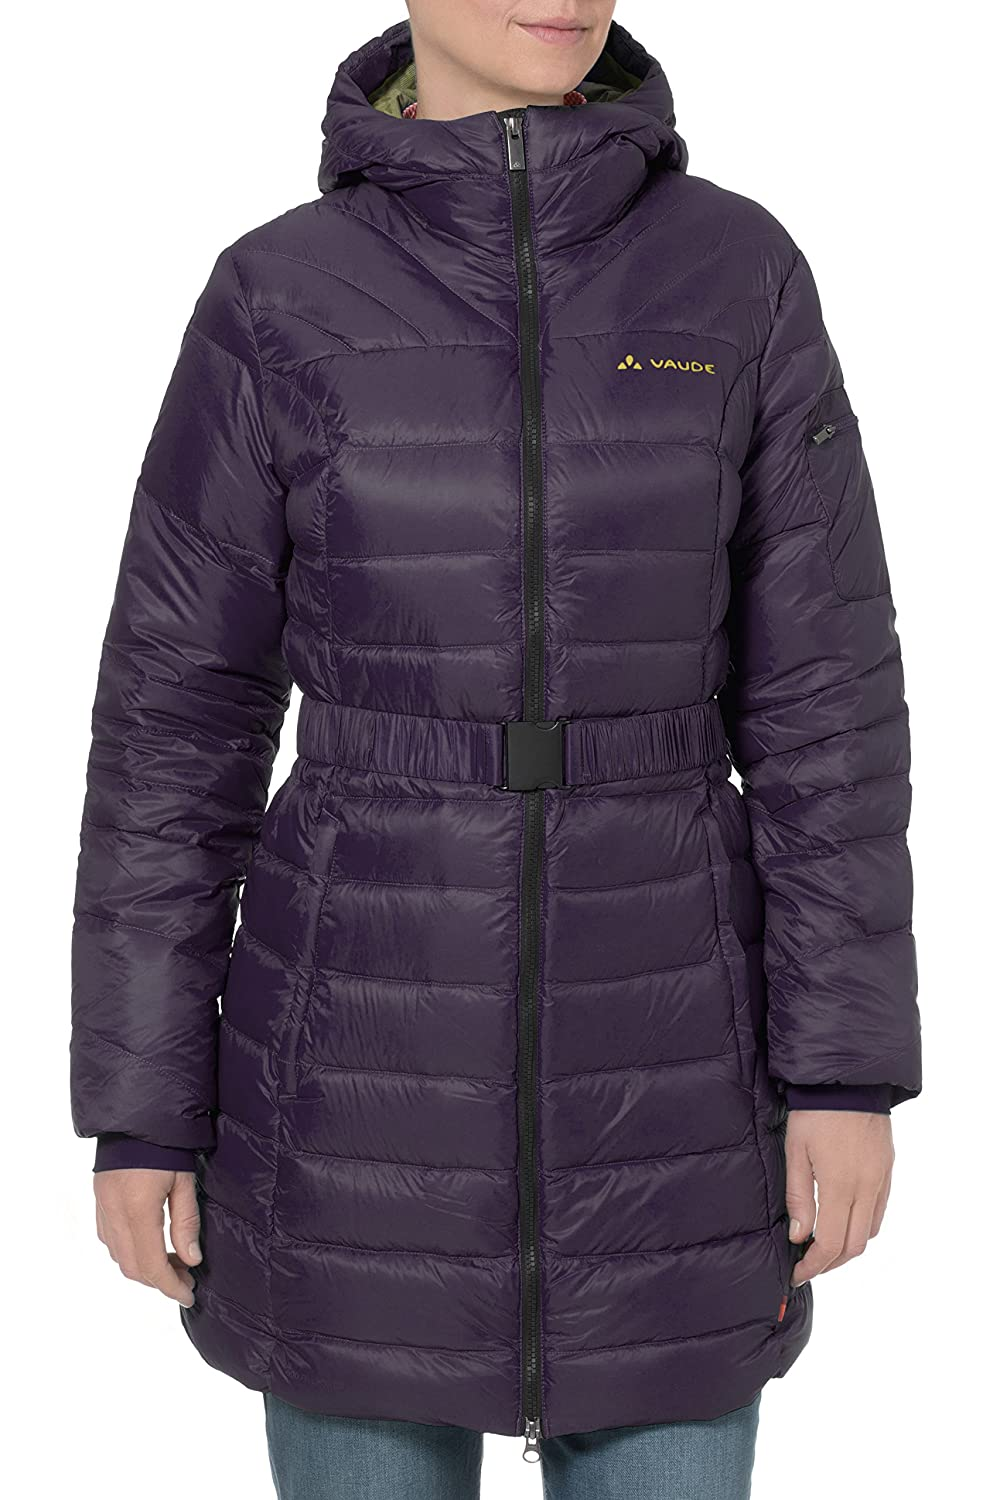 VAUDE Damen Mantel Womens Skeena Coat